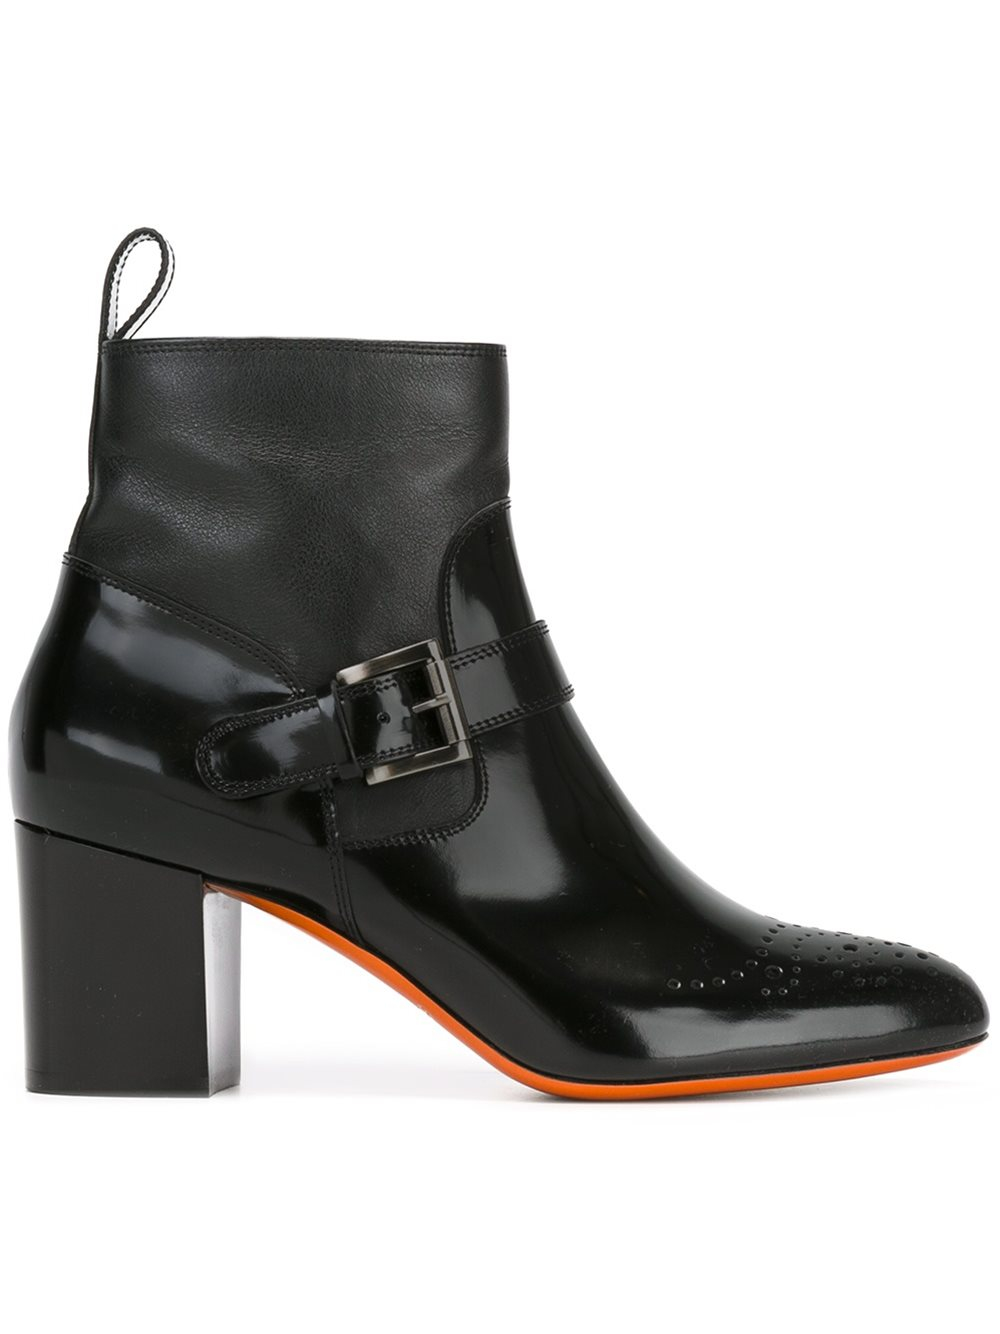 santoni buckled leather ankle boots in black lyst